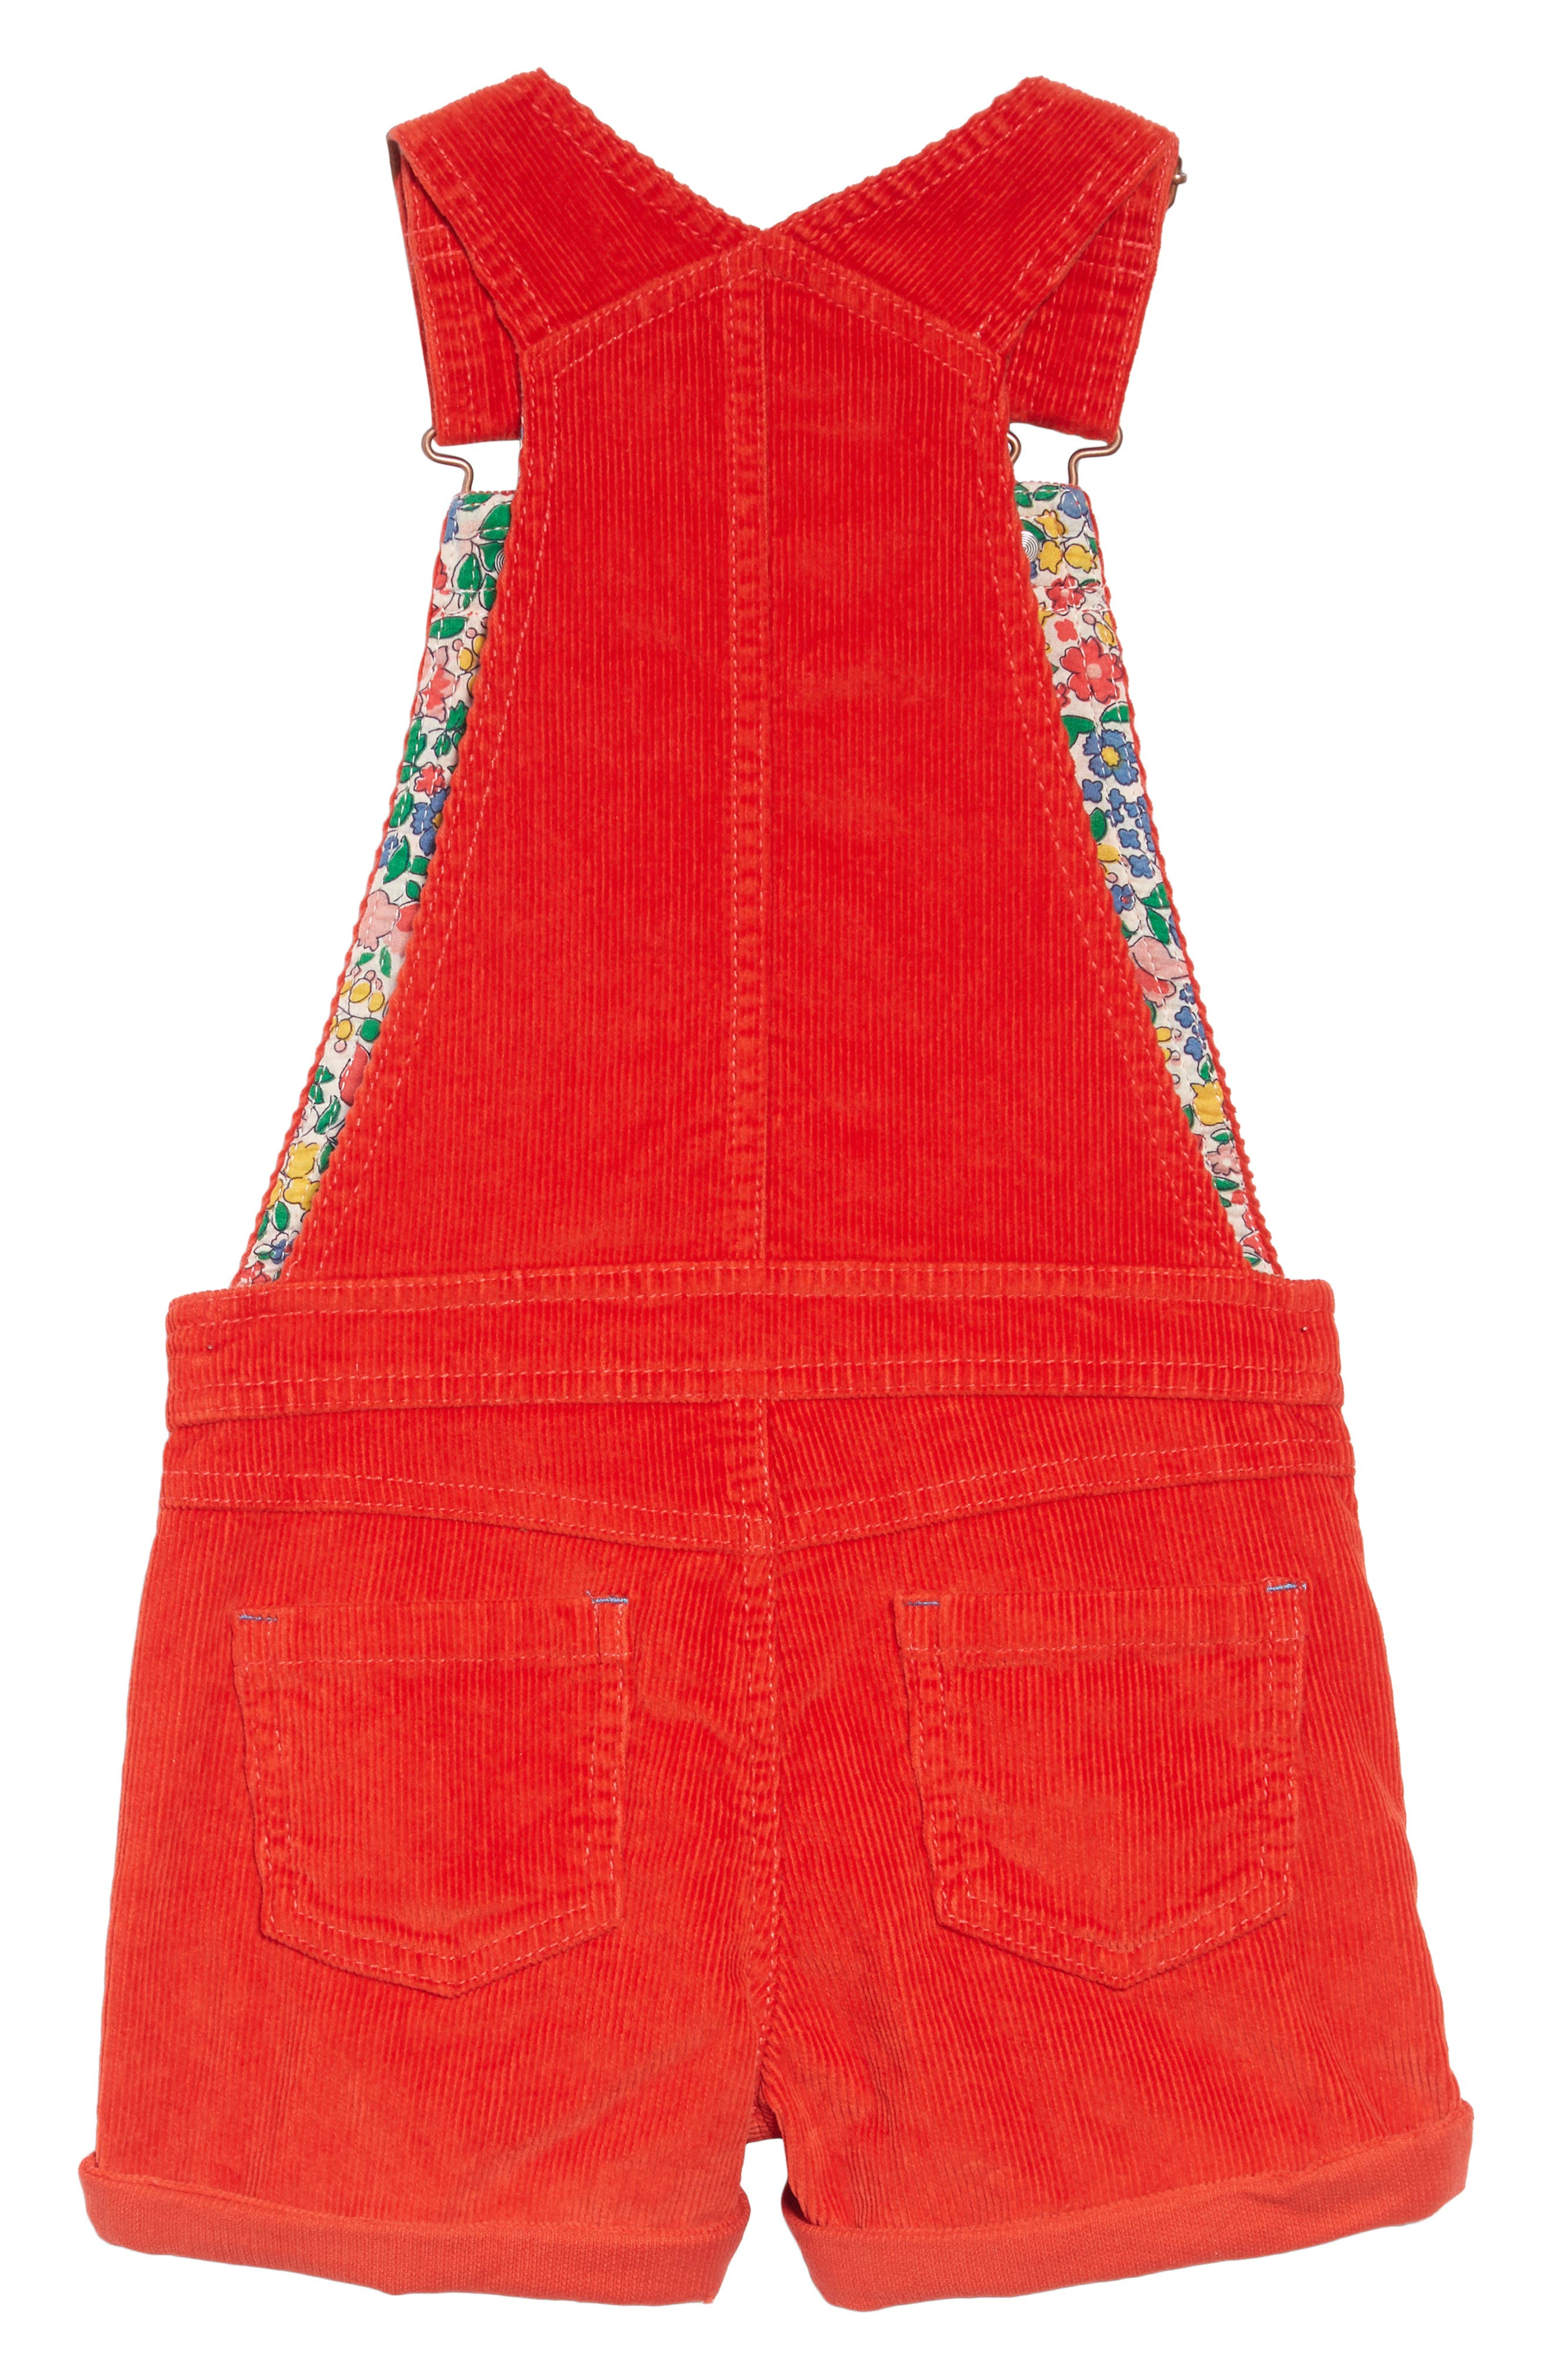 Dungarees Short Overalls,                             Alternate thumbnail 2, color,                             RED POPPY RED